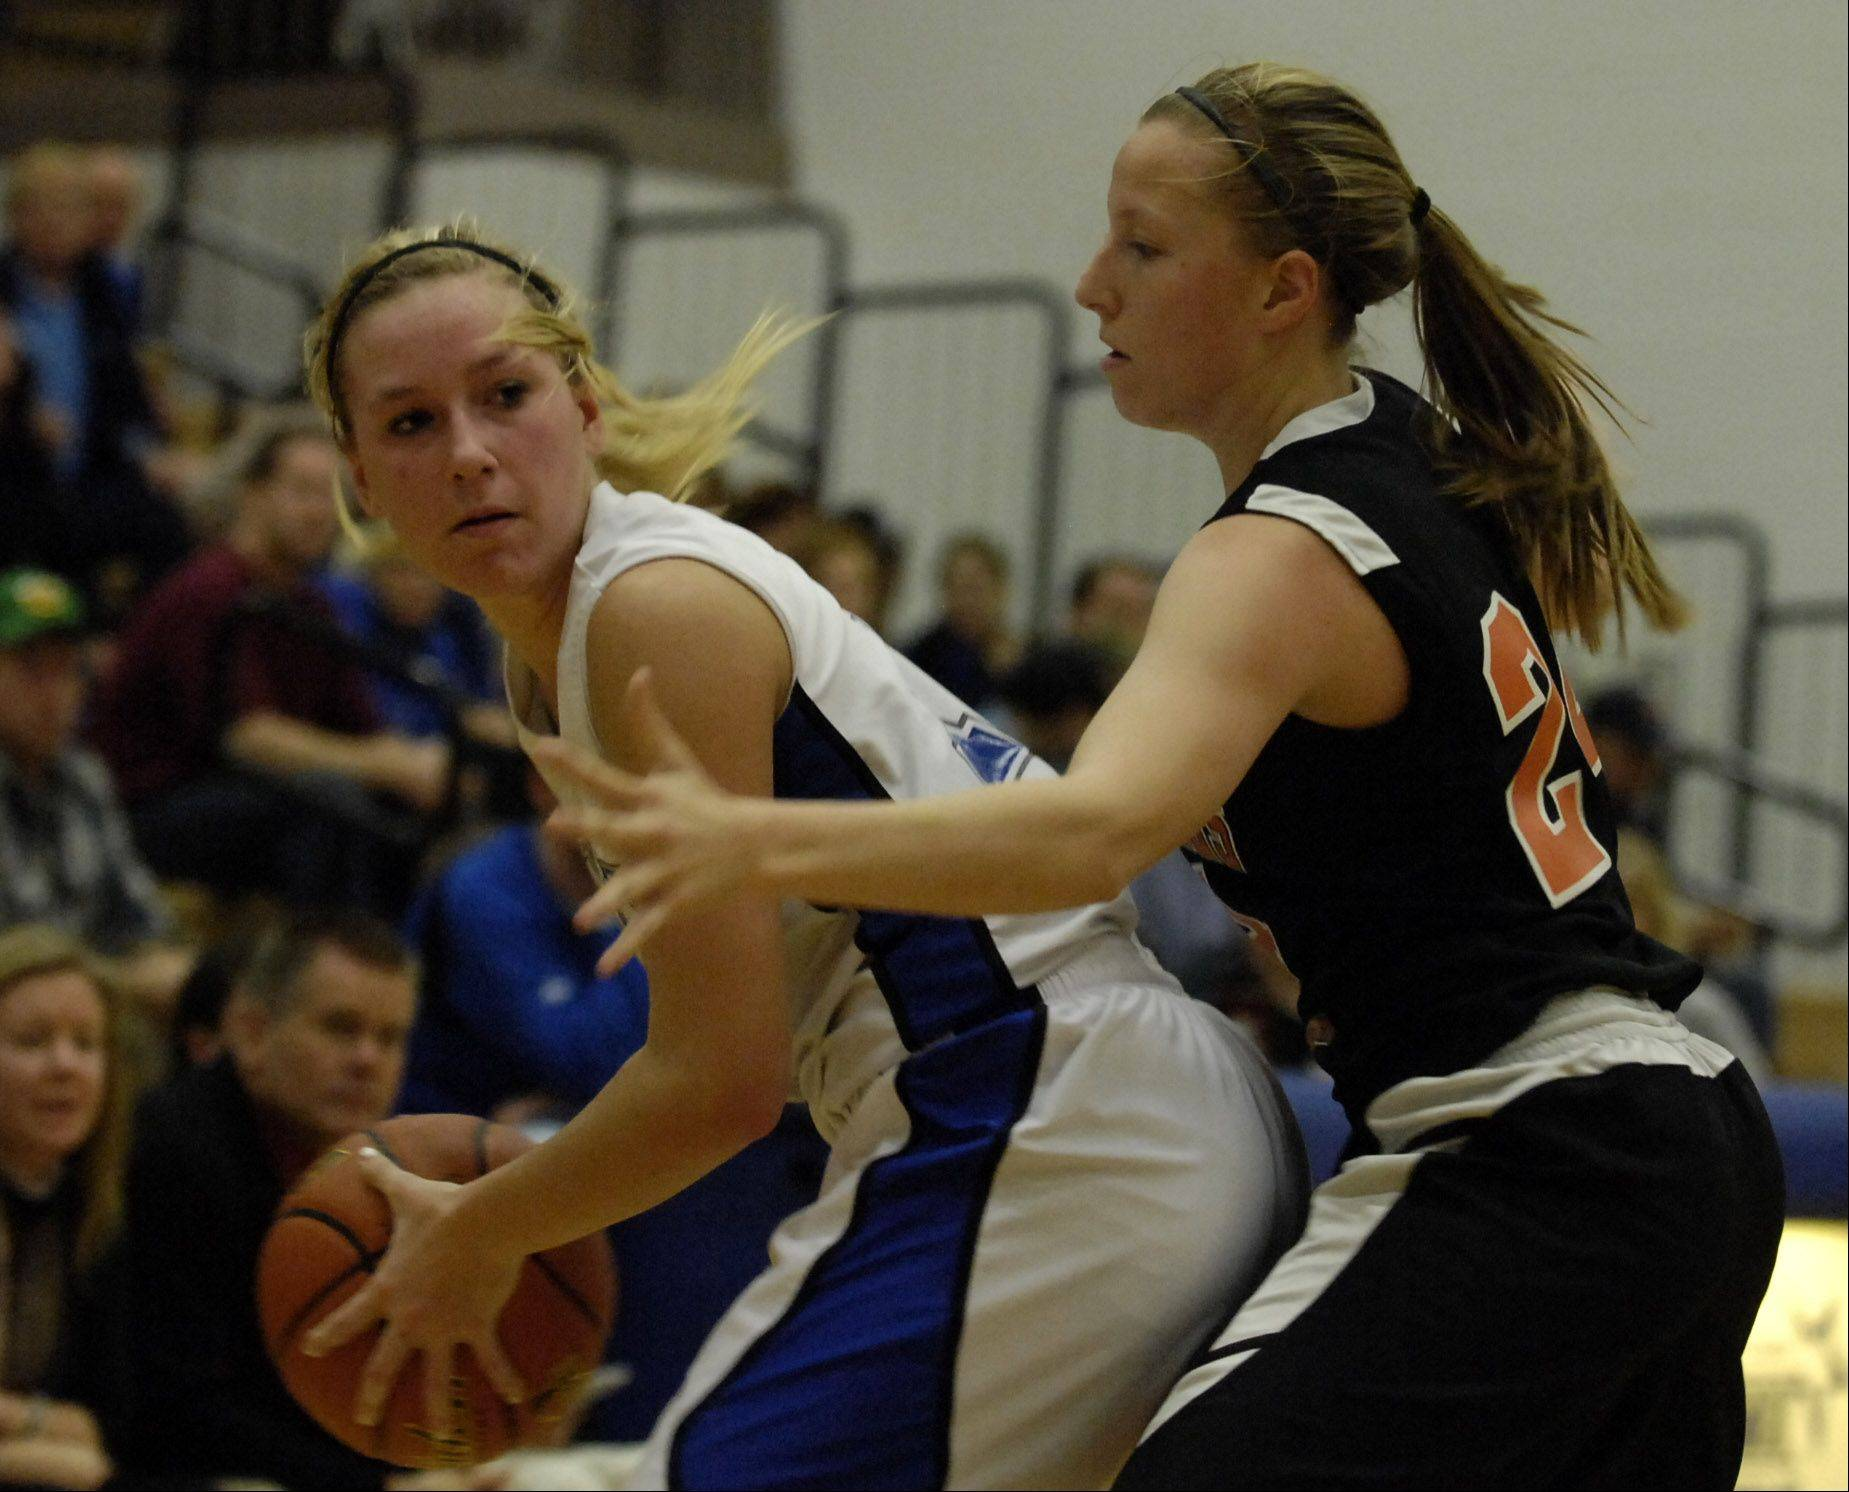 Images from the St. Charles East vs. St. Charles North girls basketball game Wednesday, December 14, 2011.